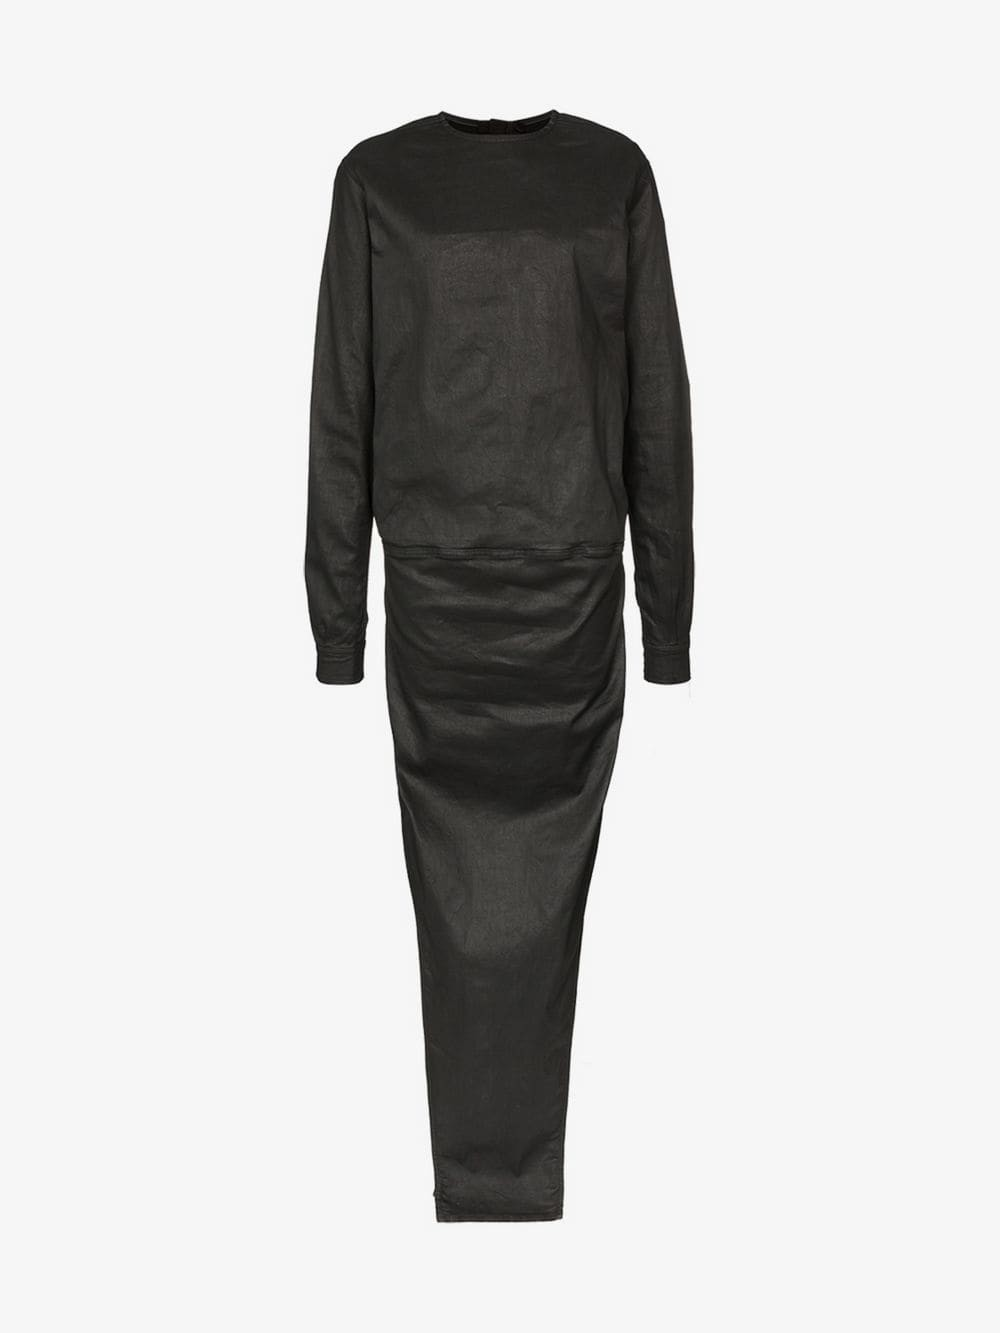 Rick Owens double-layer maxi dress in black